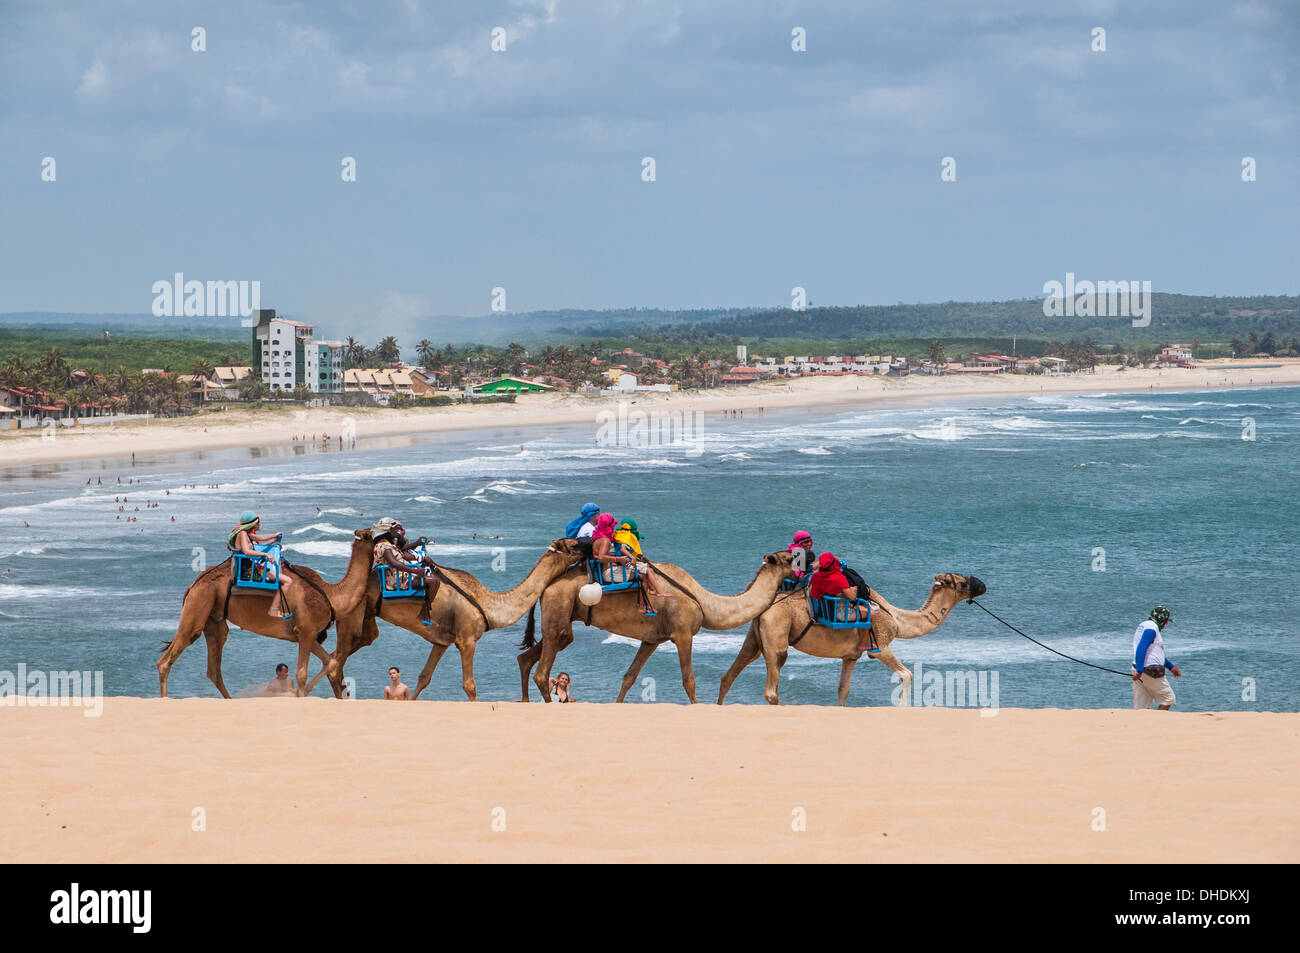 Camel riding in the famous sand dunes of Natal, Rio Grande do Norte, Brazil - Stock Image